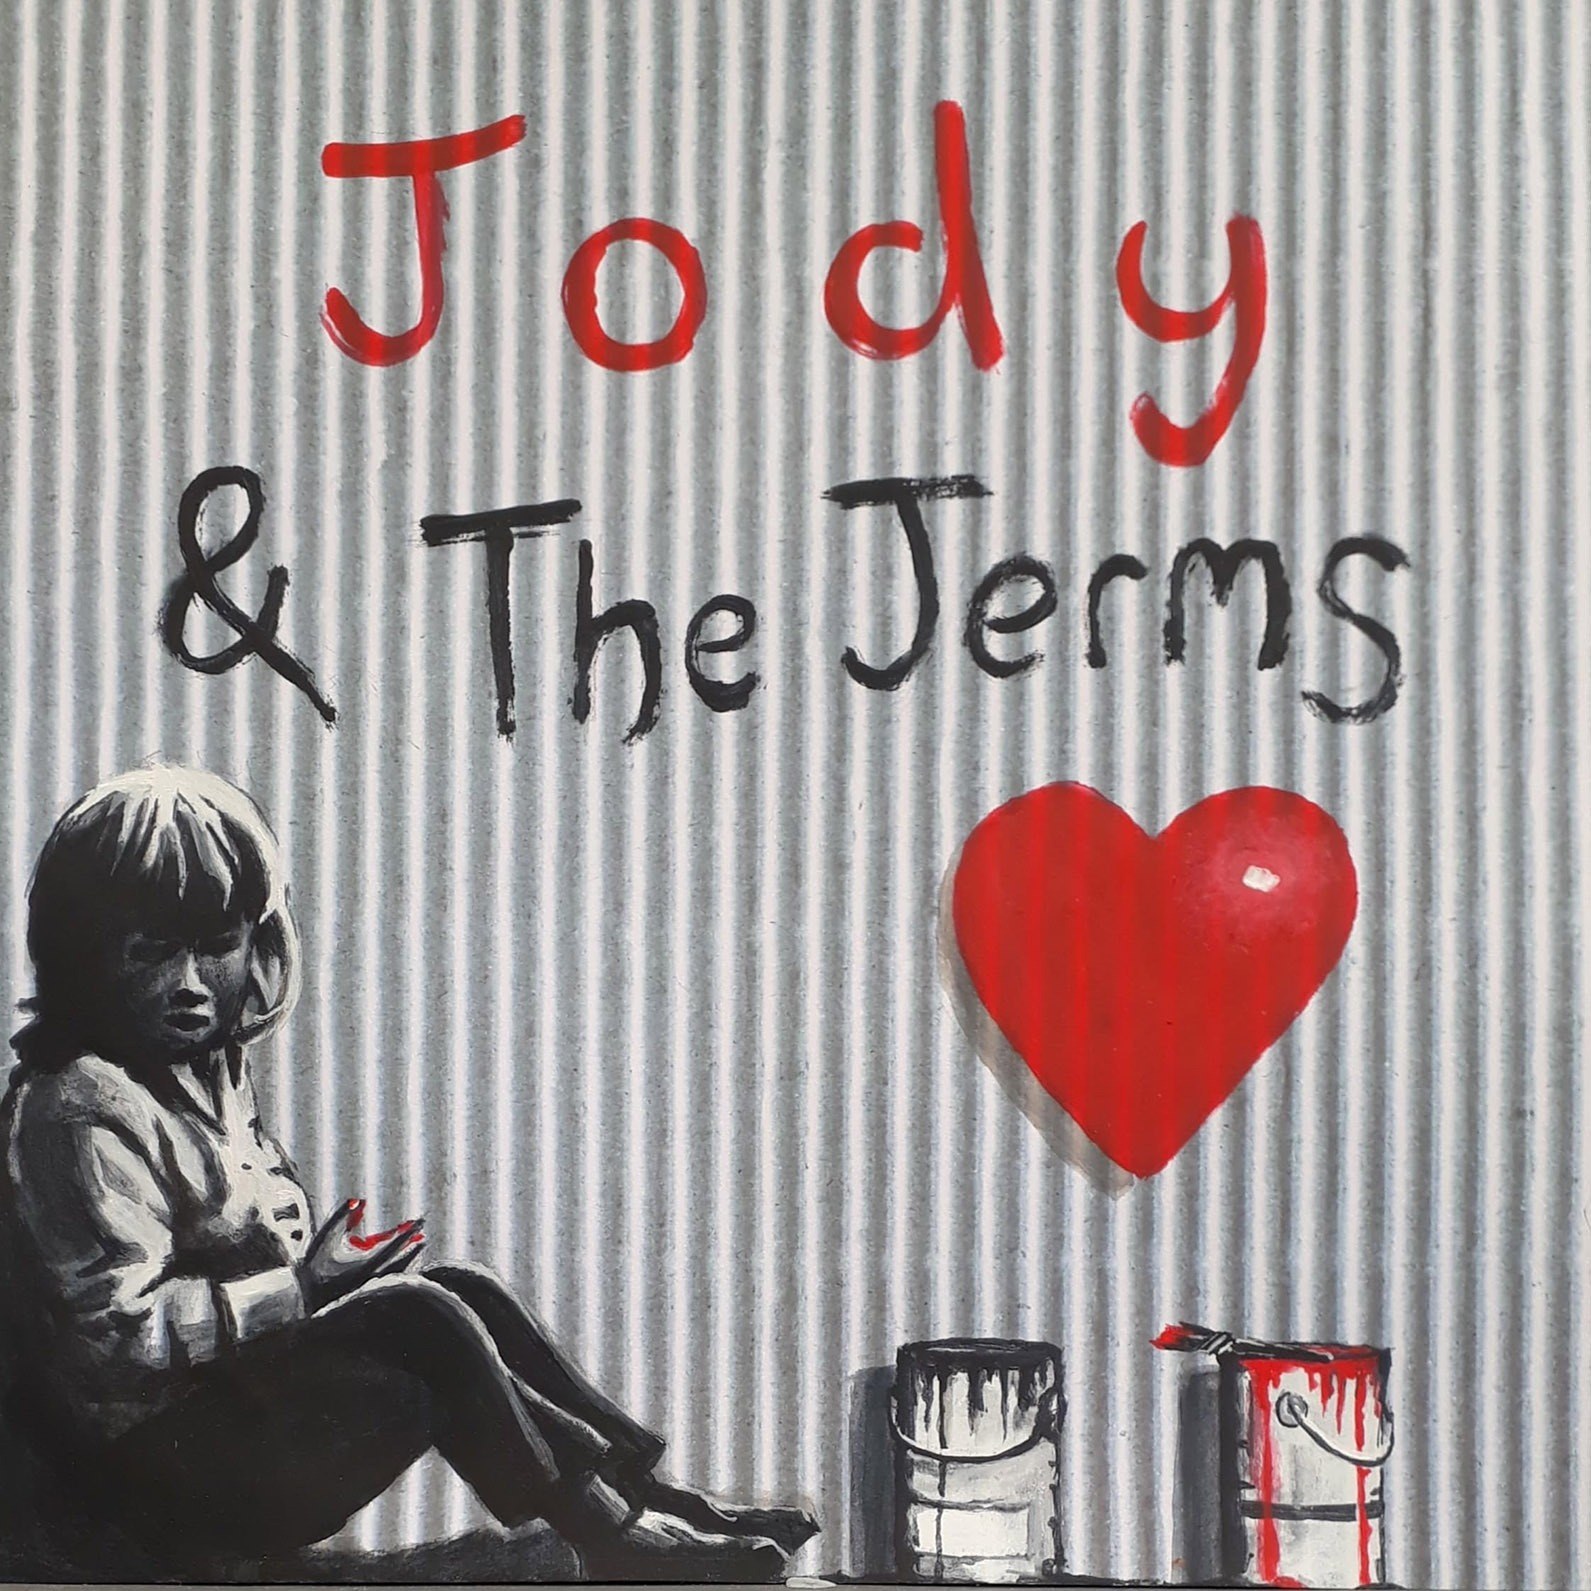 Jody & the Jerms